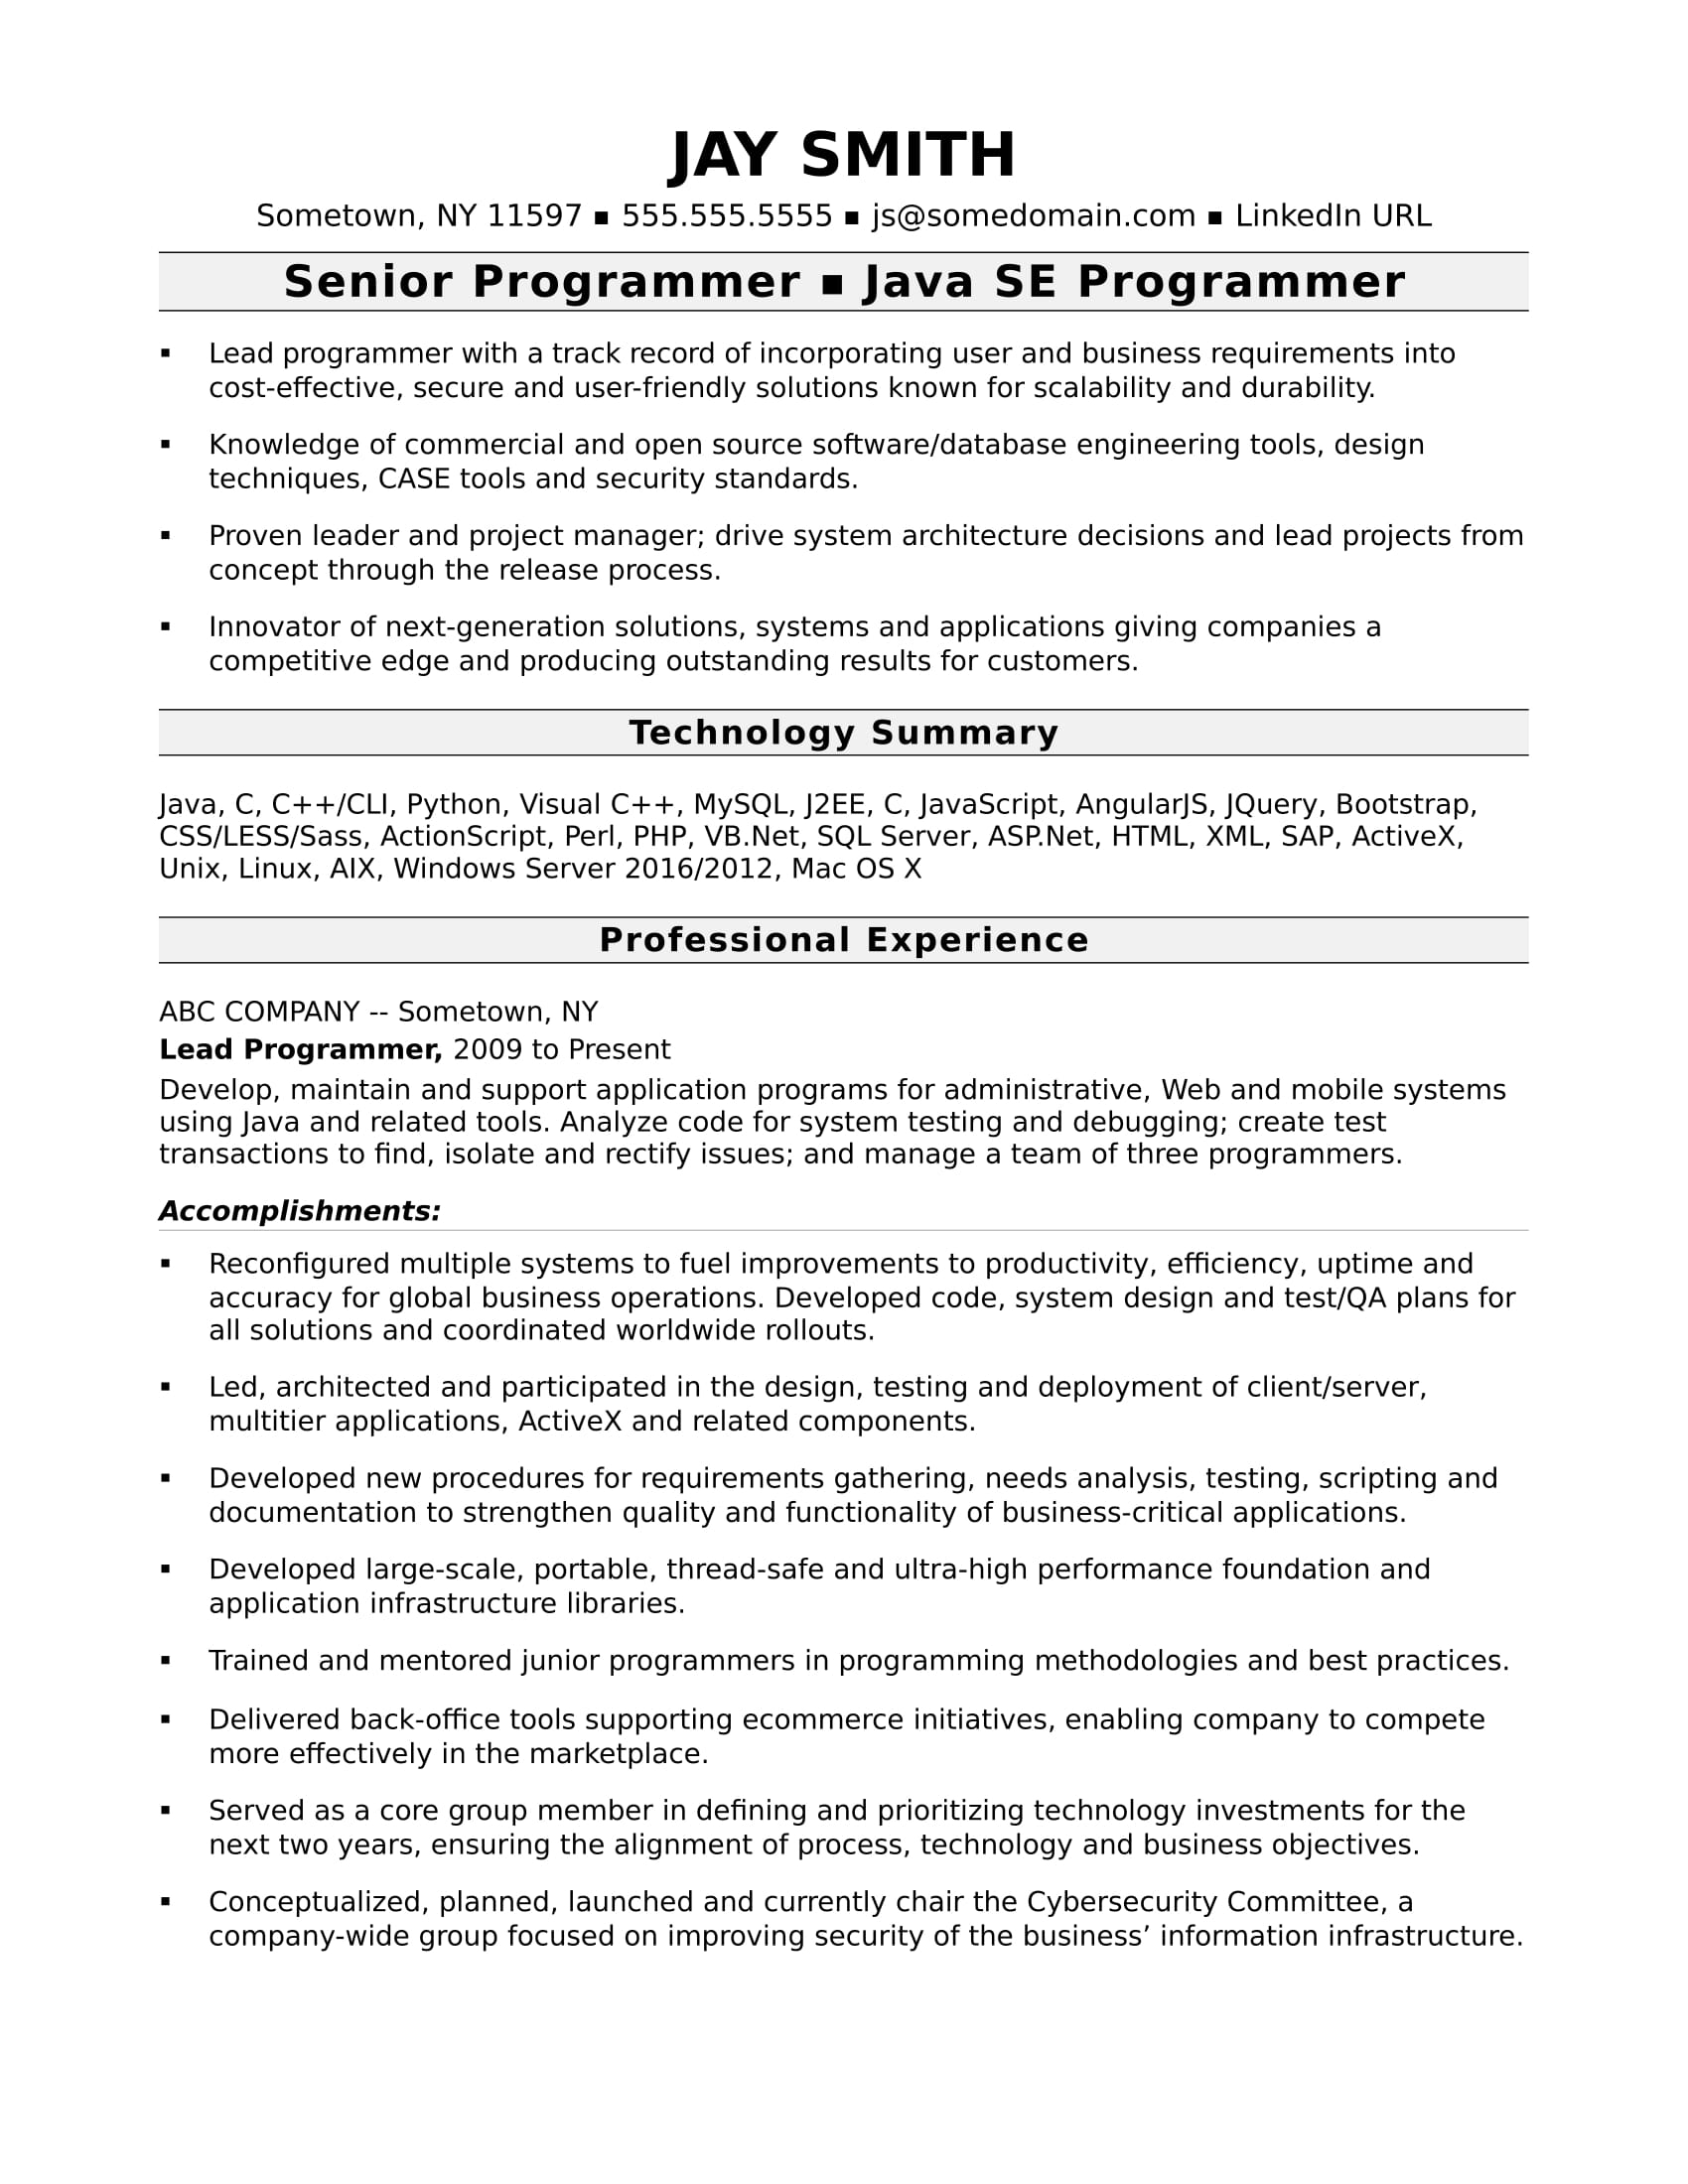 sample resume for an experienced computer programmer - Computer Programming Resume